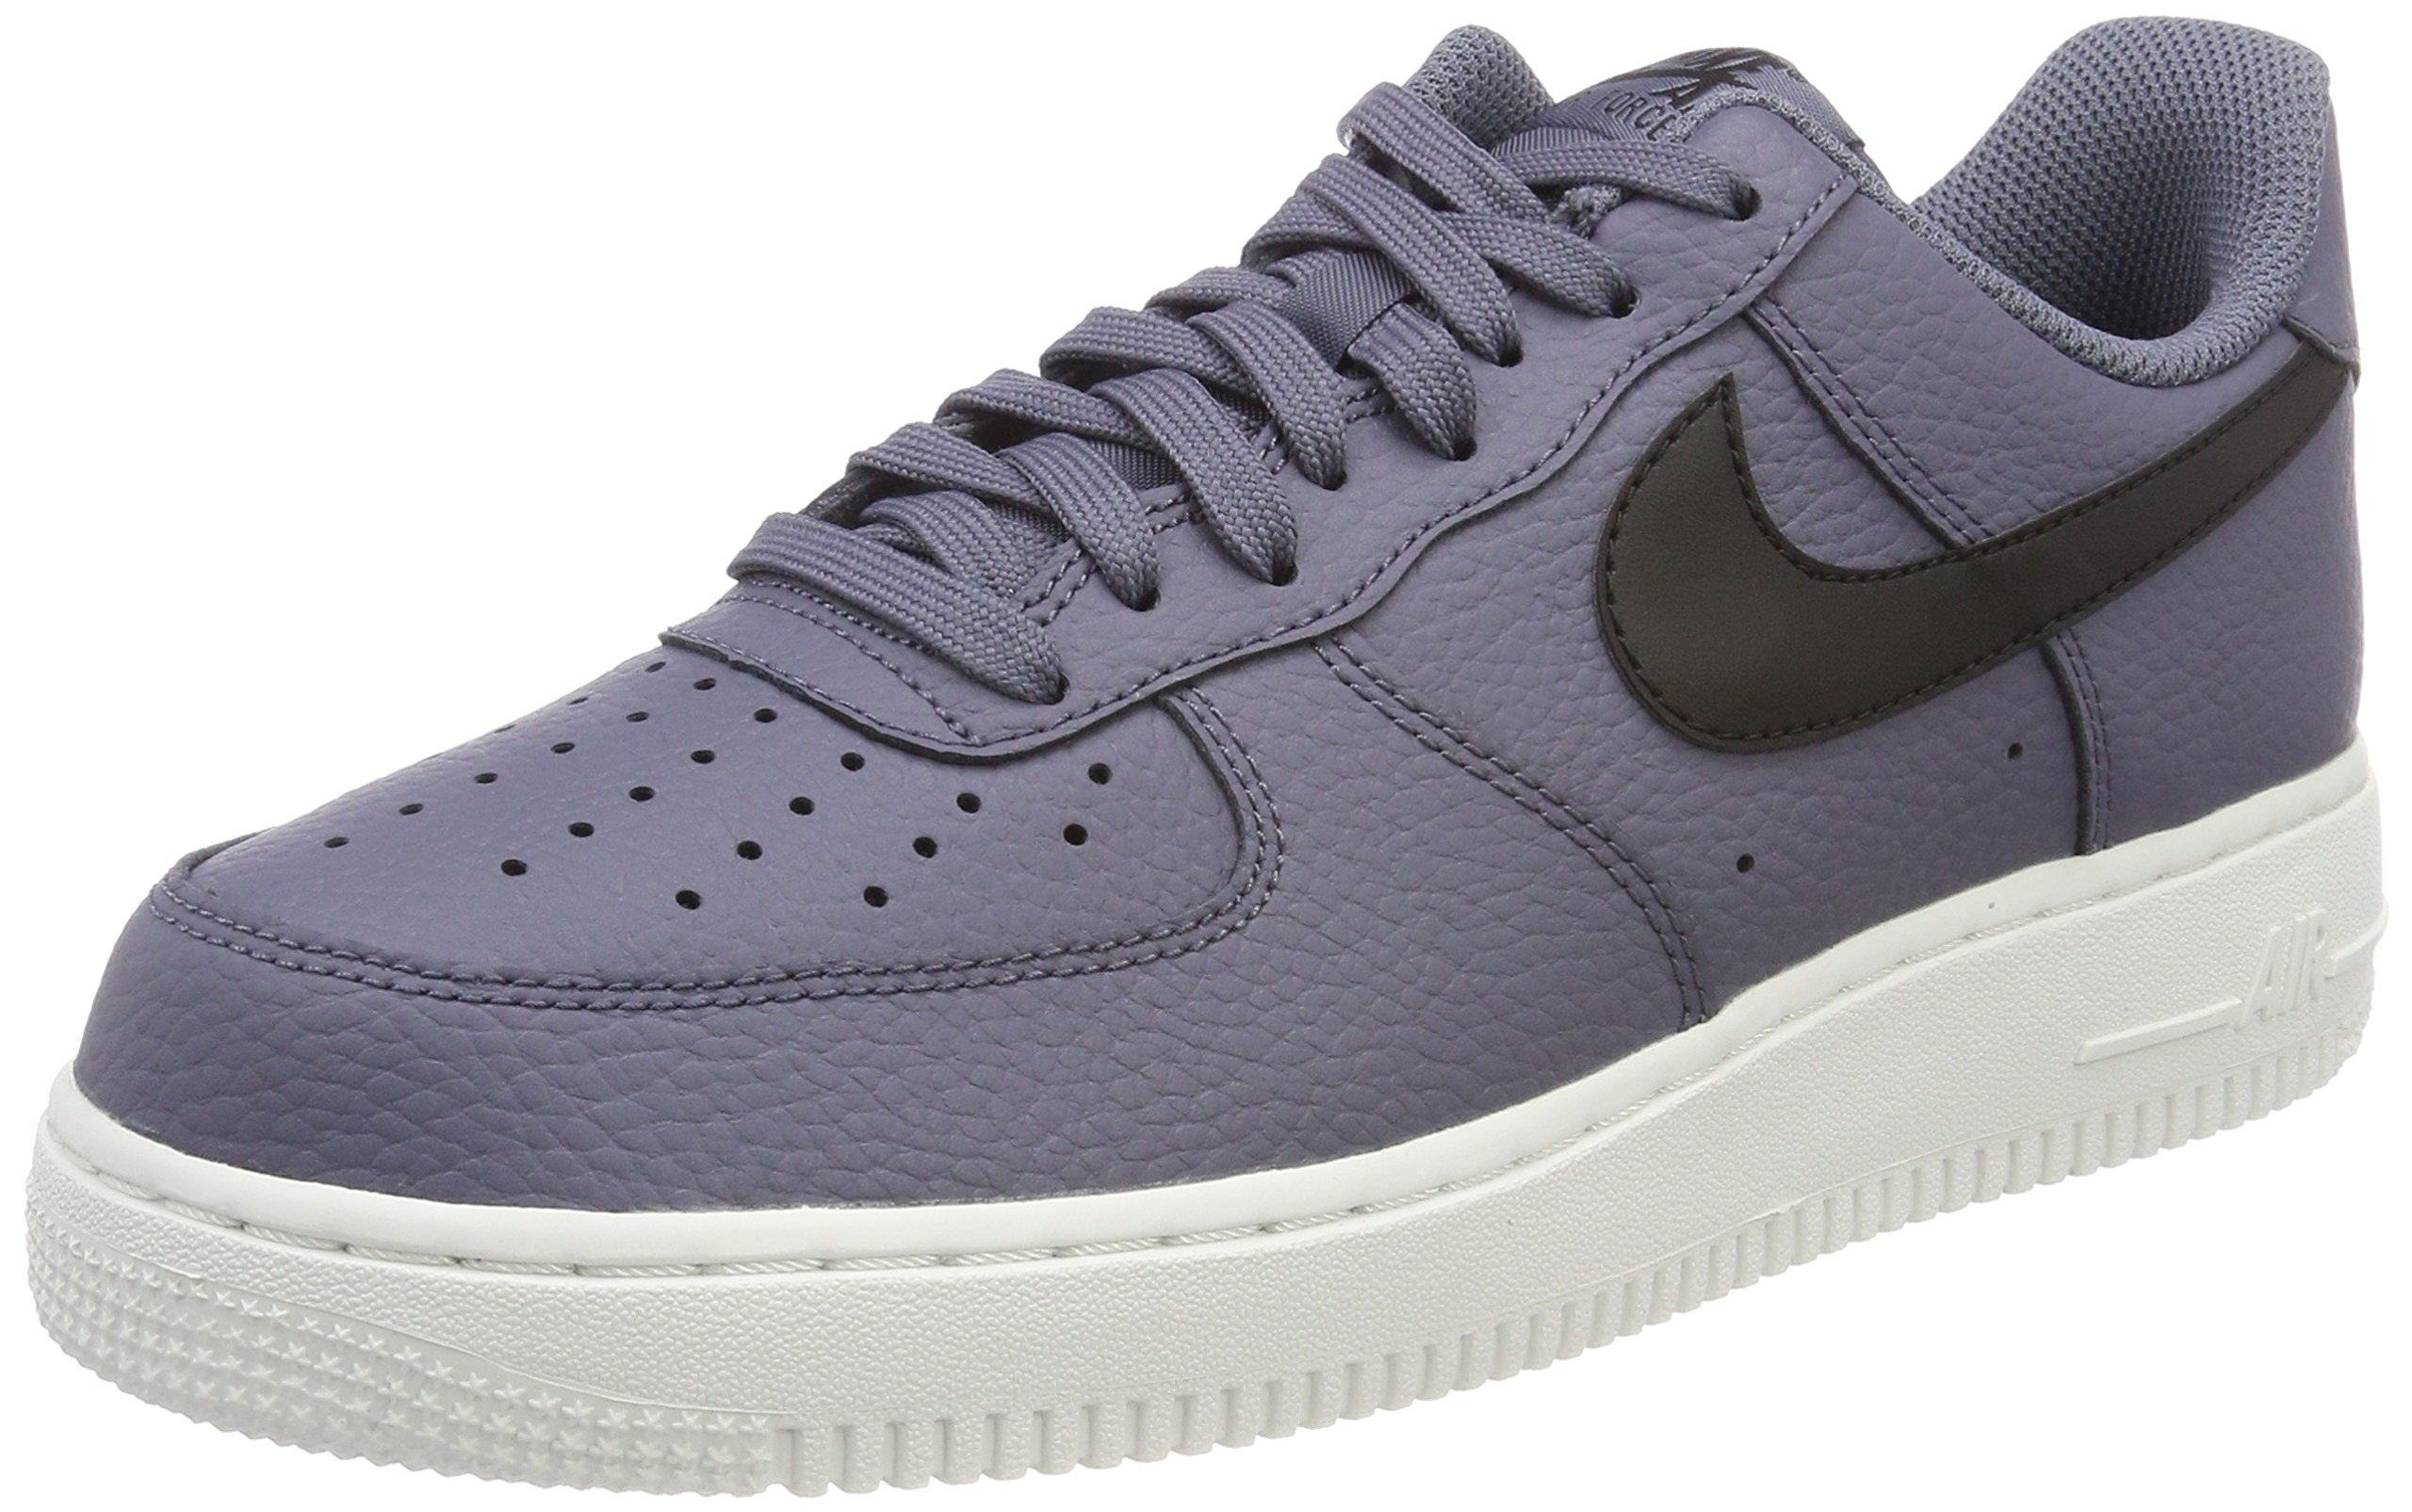 sneakers for cheap 79482 26c9a Galleon - NIKE Men s Air Force 1 Shoes,(Blue Black,10.5 D (M) US)